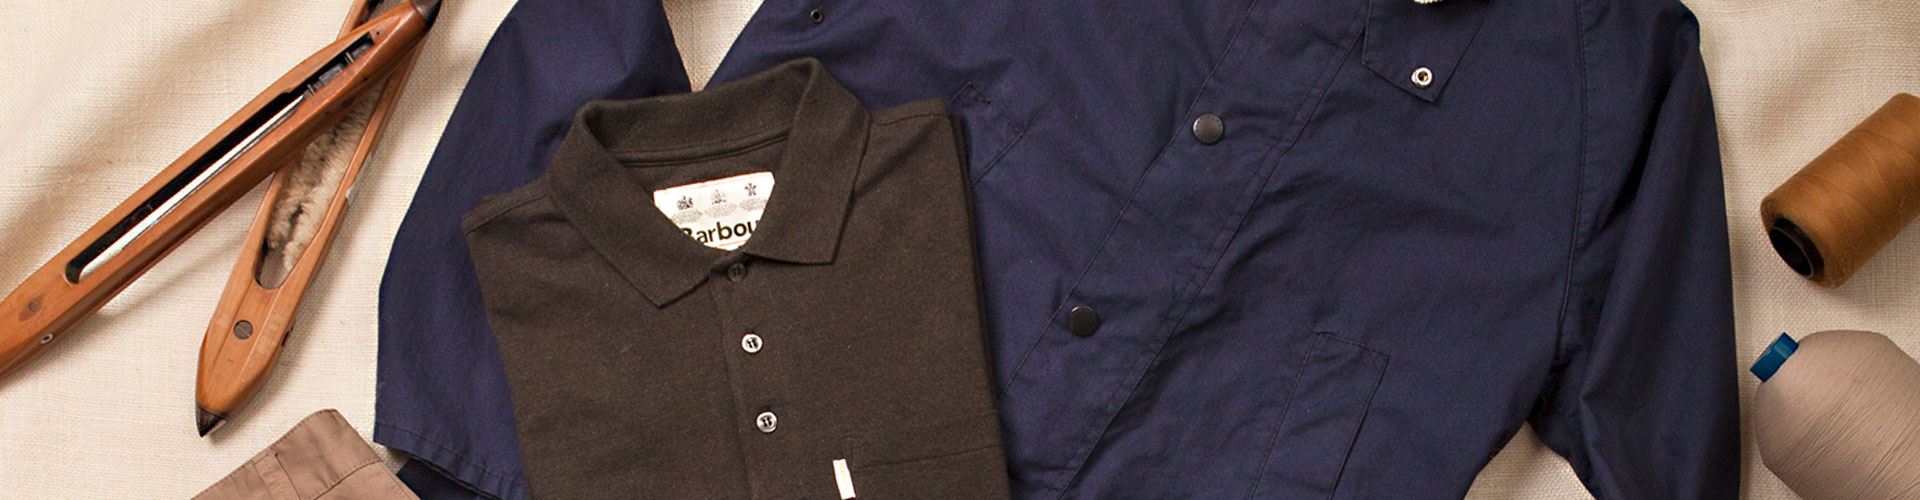 Barbour Made for Japan Collection AW18